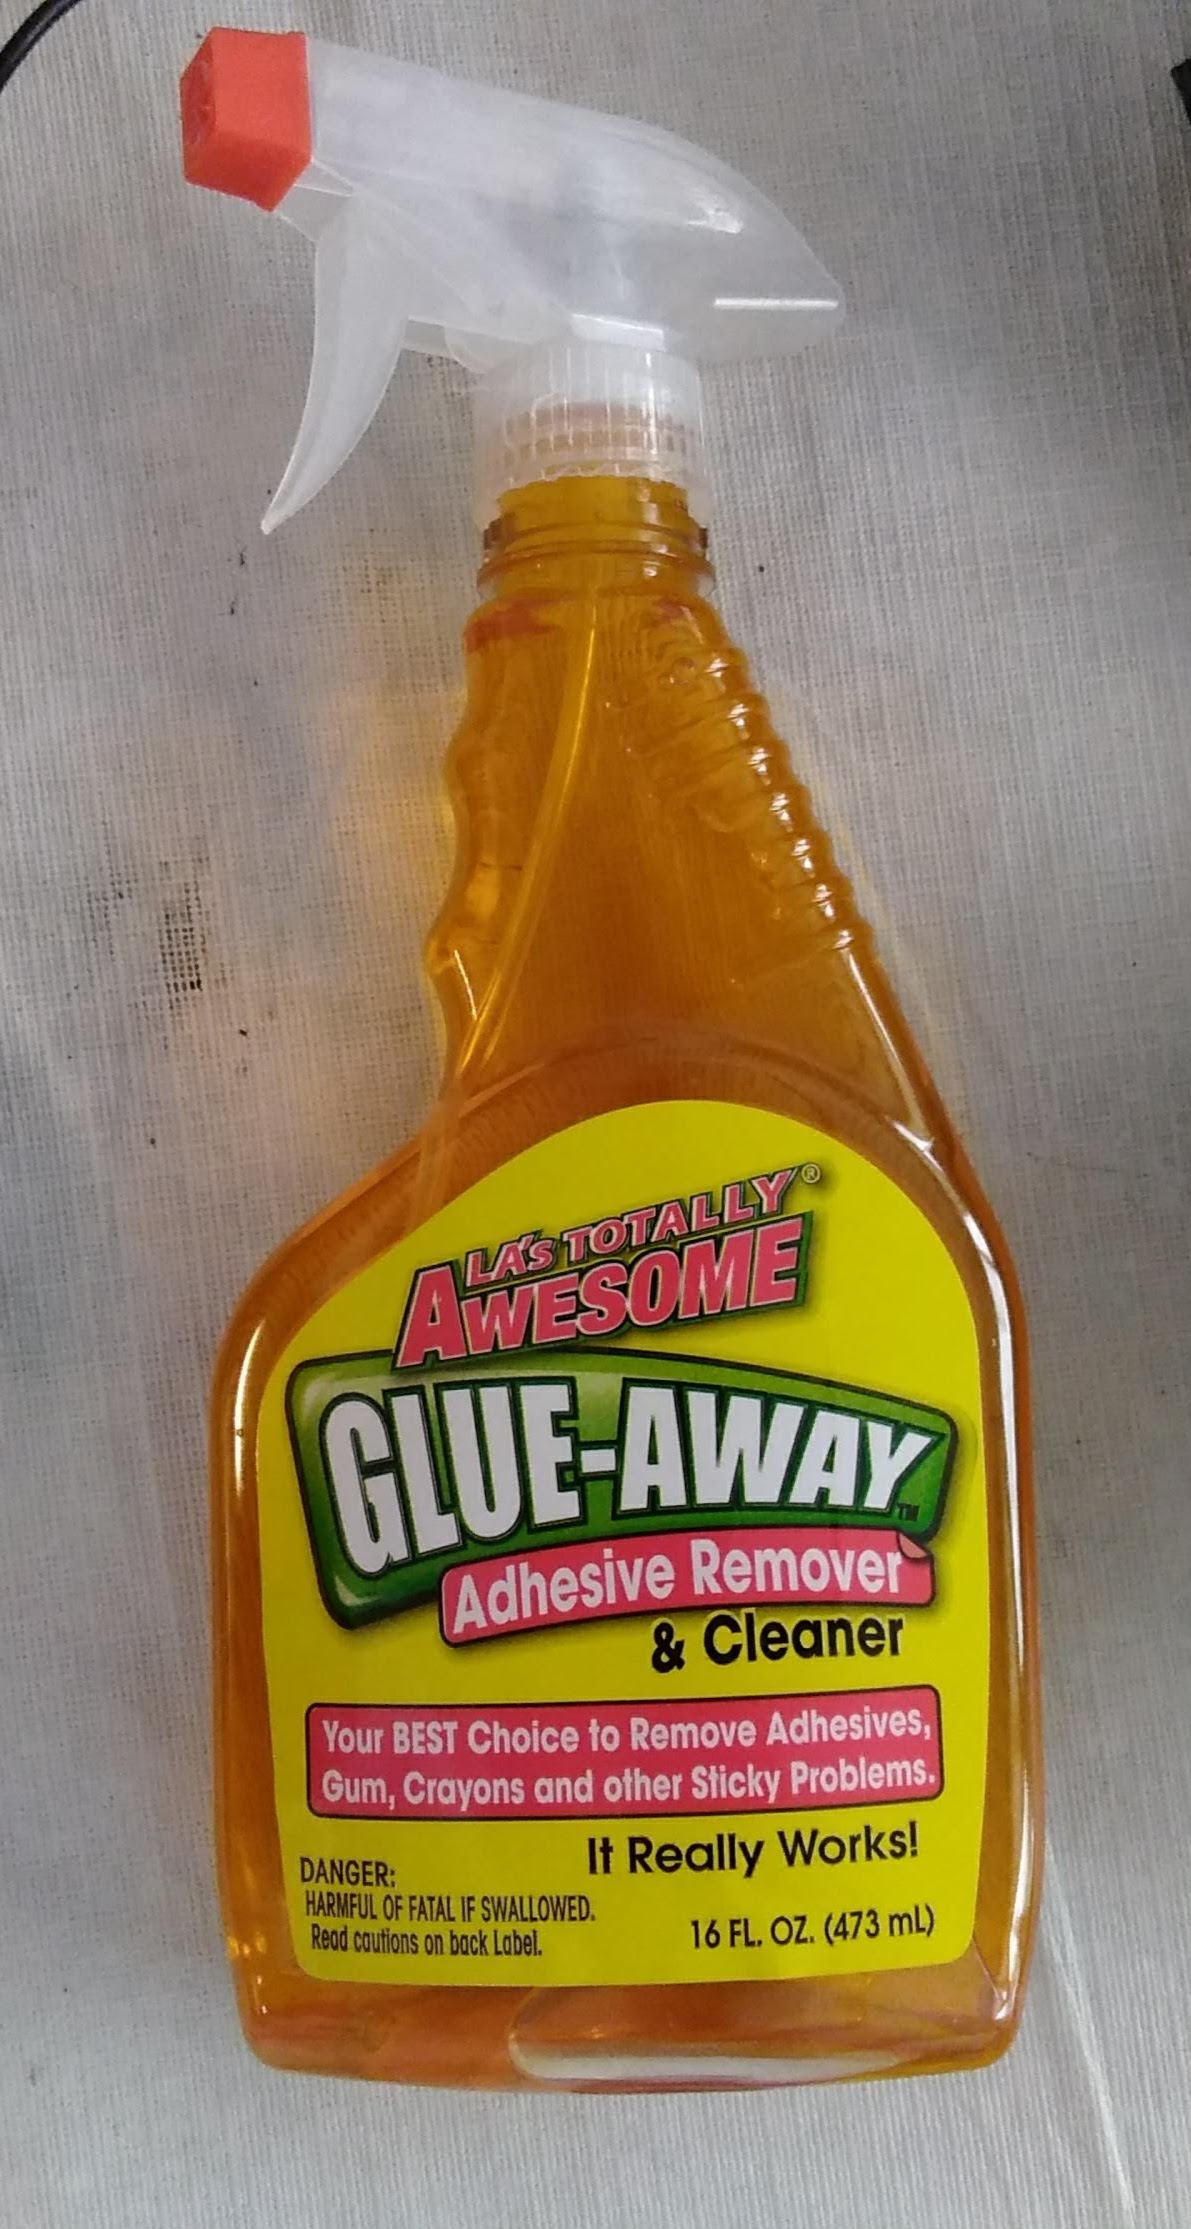 LA's Totally Awsome Glue-Away and Goo Gone Reviewed and Compared